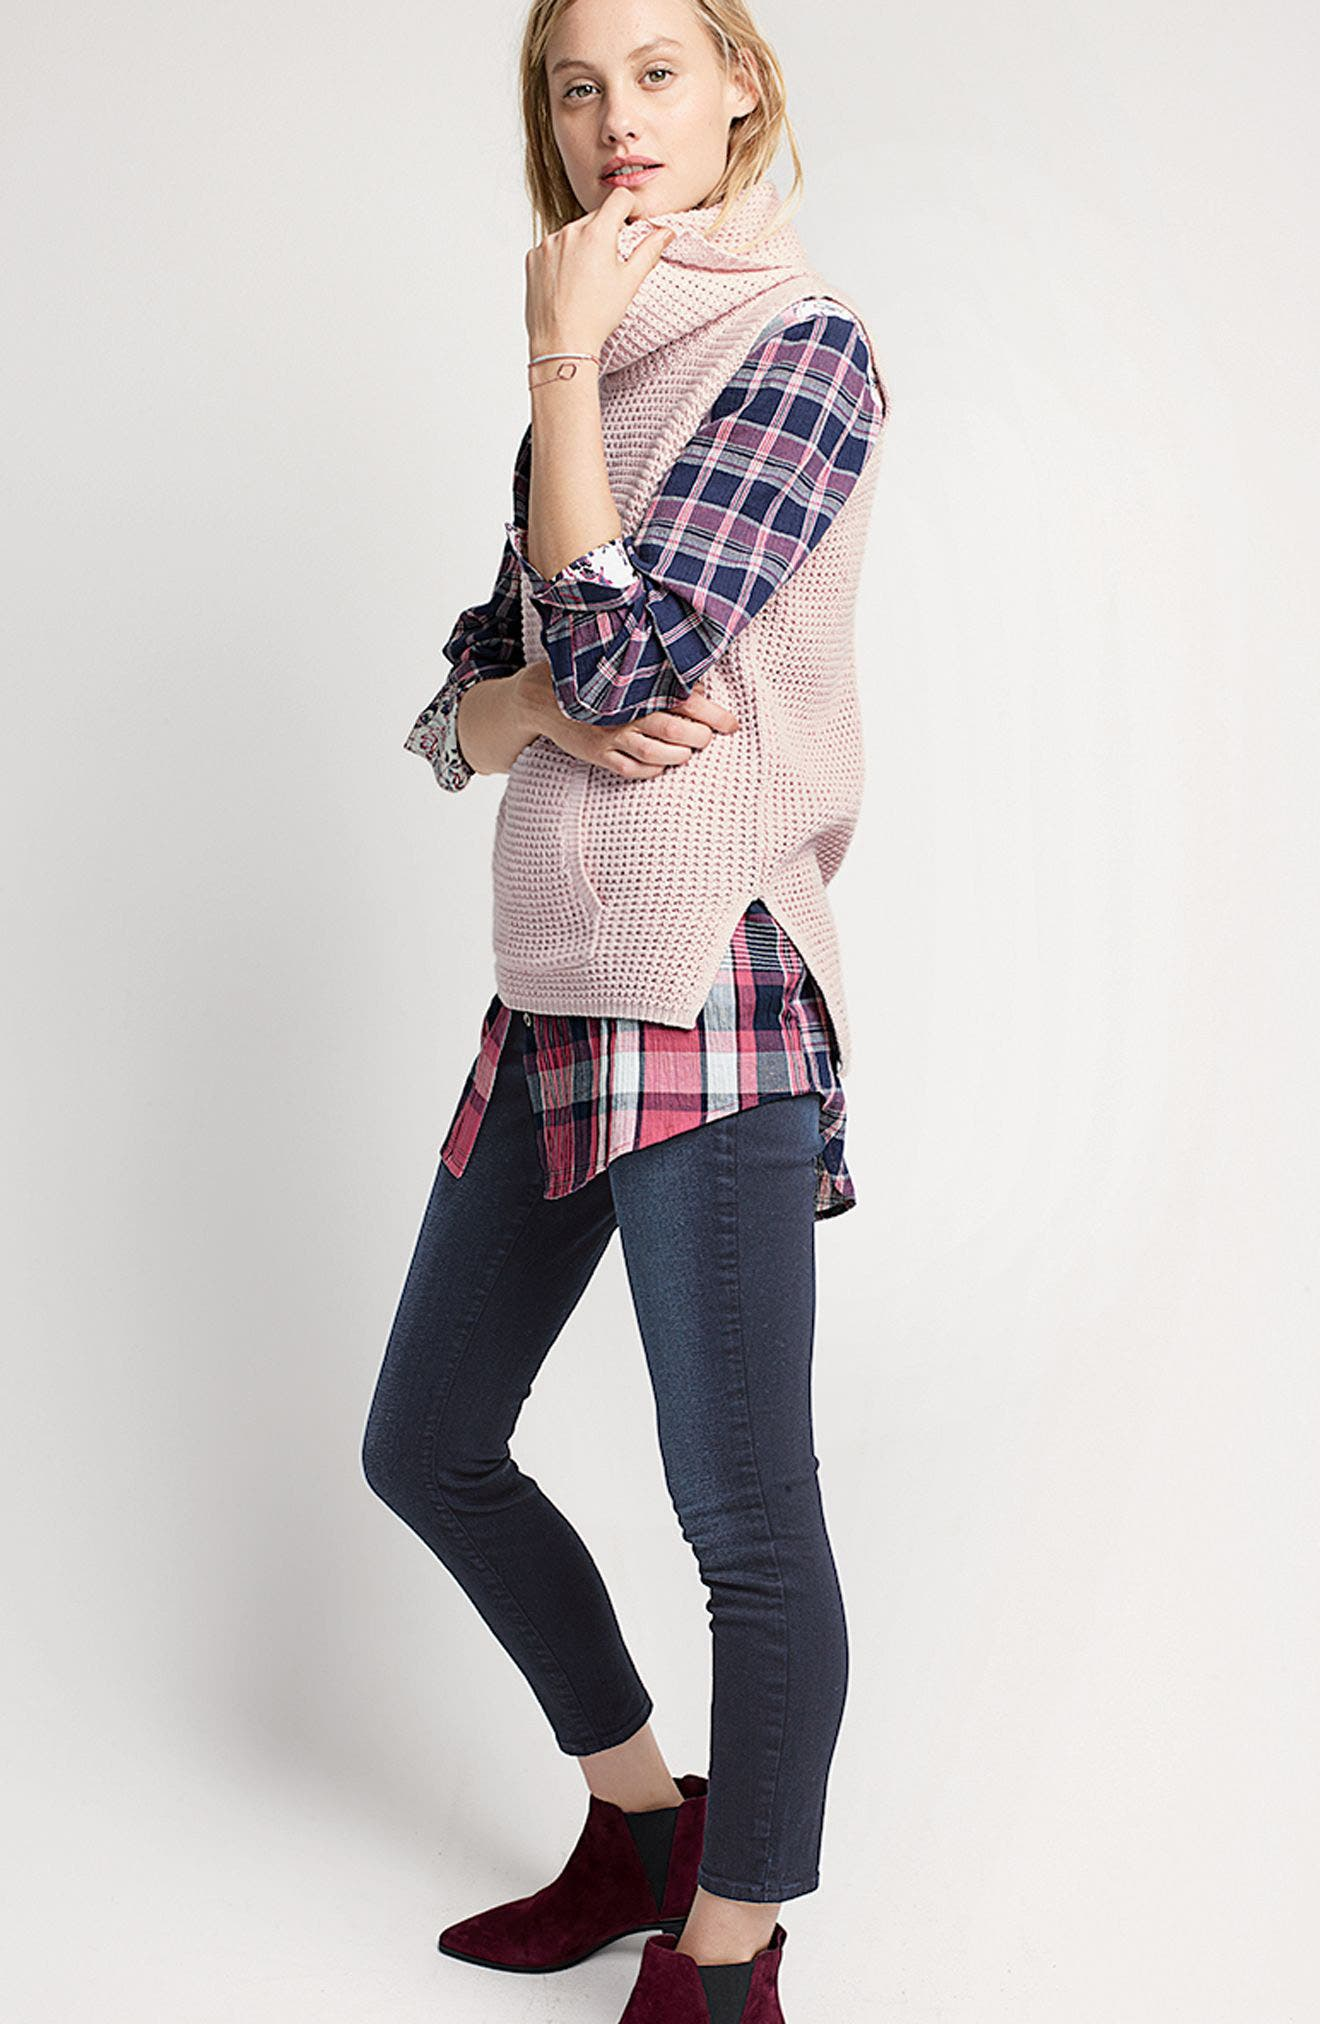 Caslon® Shirt, Two by Vince Camuto Vest & NYDJ Jeans Outfit with Accessories